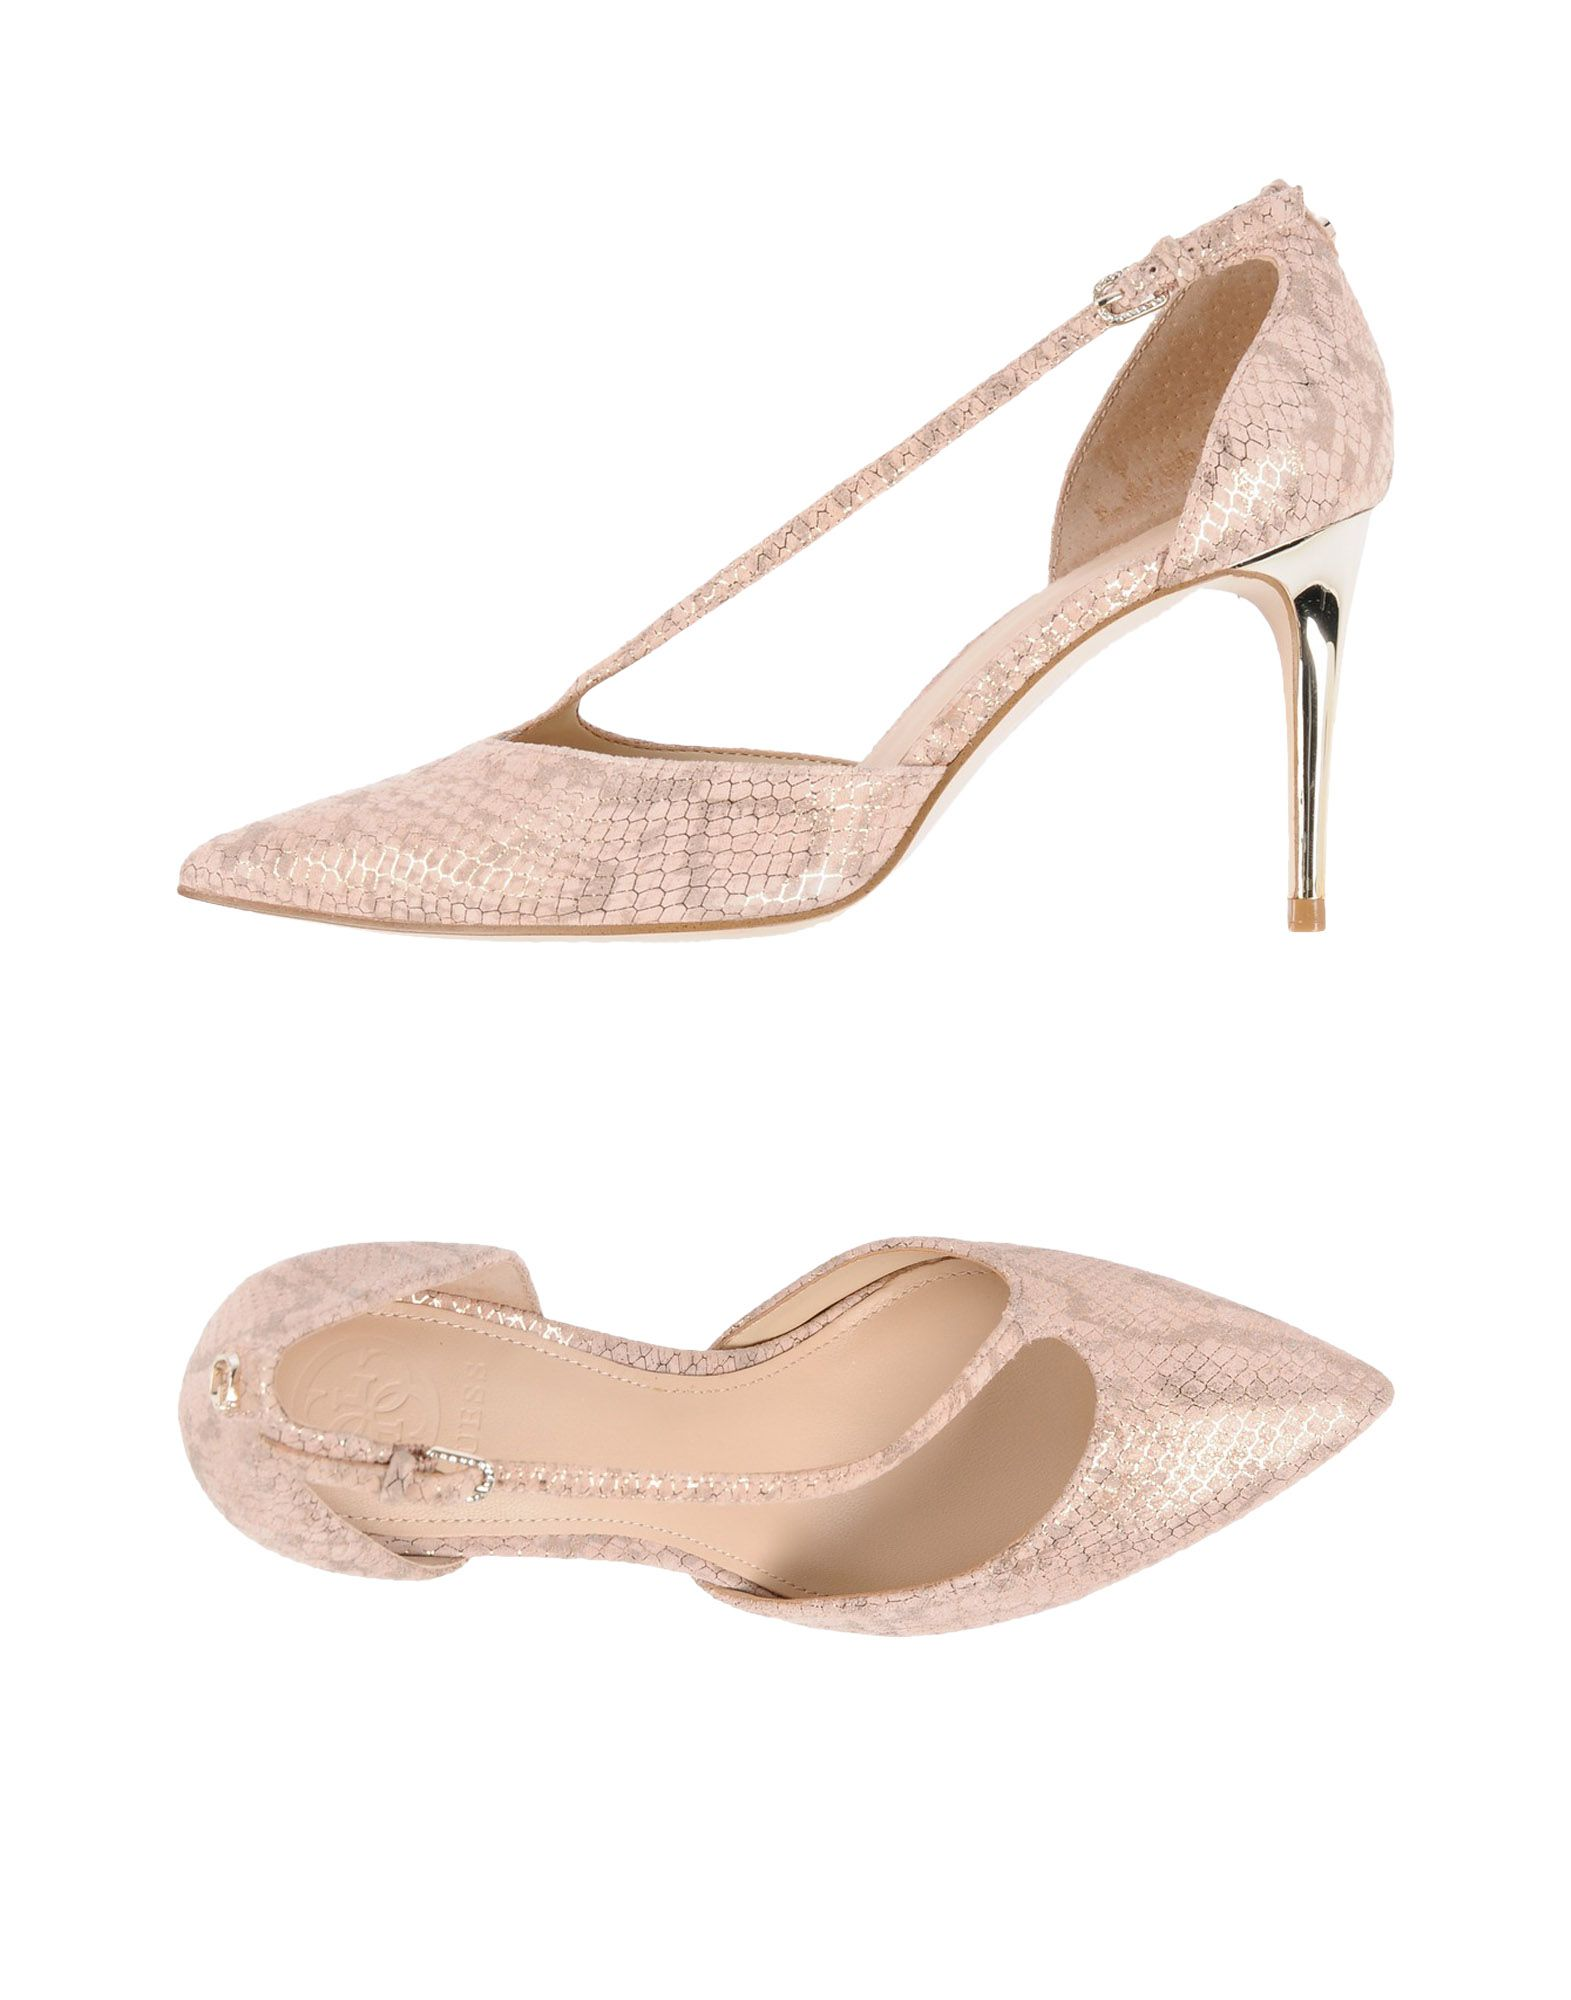 6235aec68 Guess Pump - Women Guess Pumps online on YOOX United States - 11434743